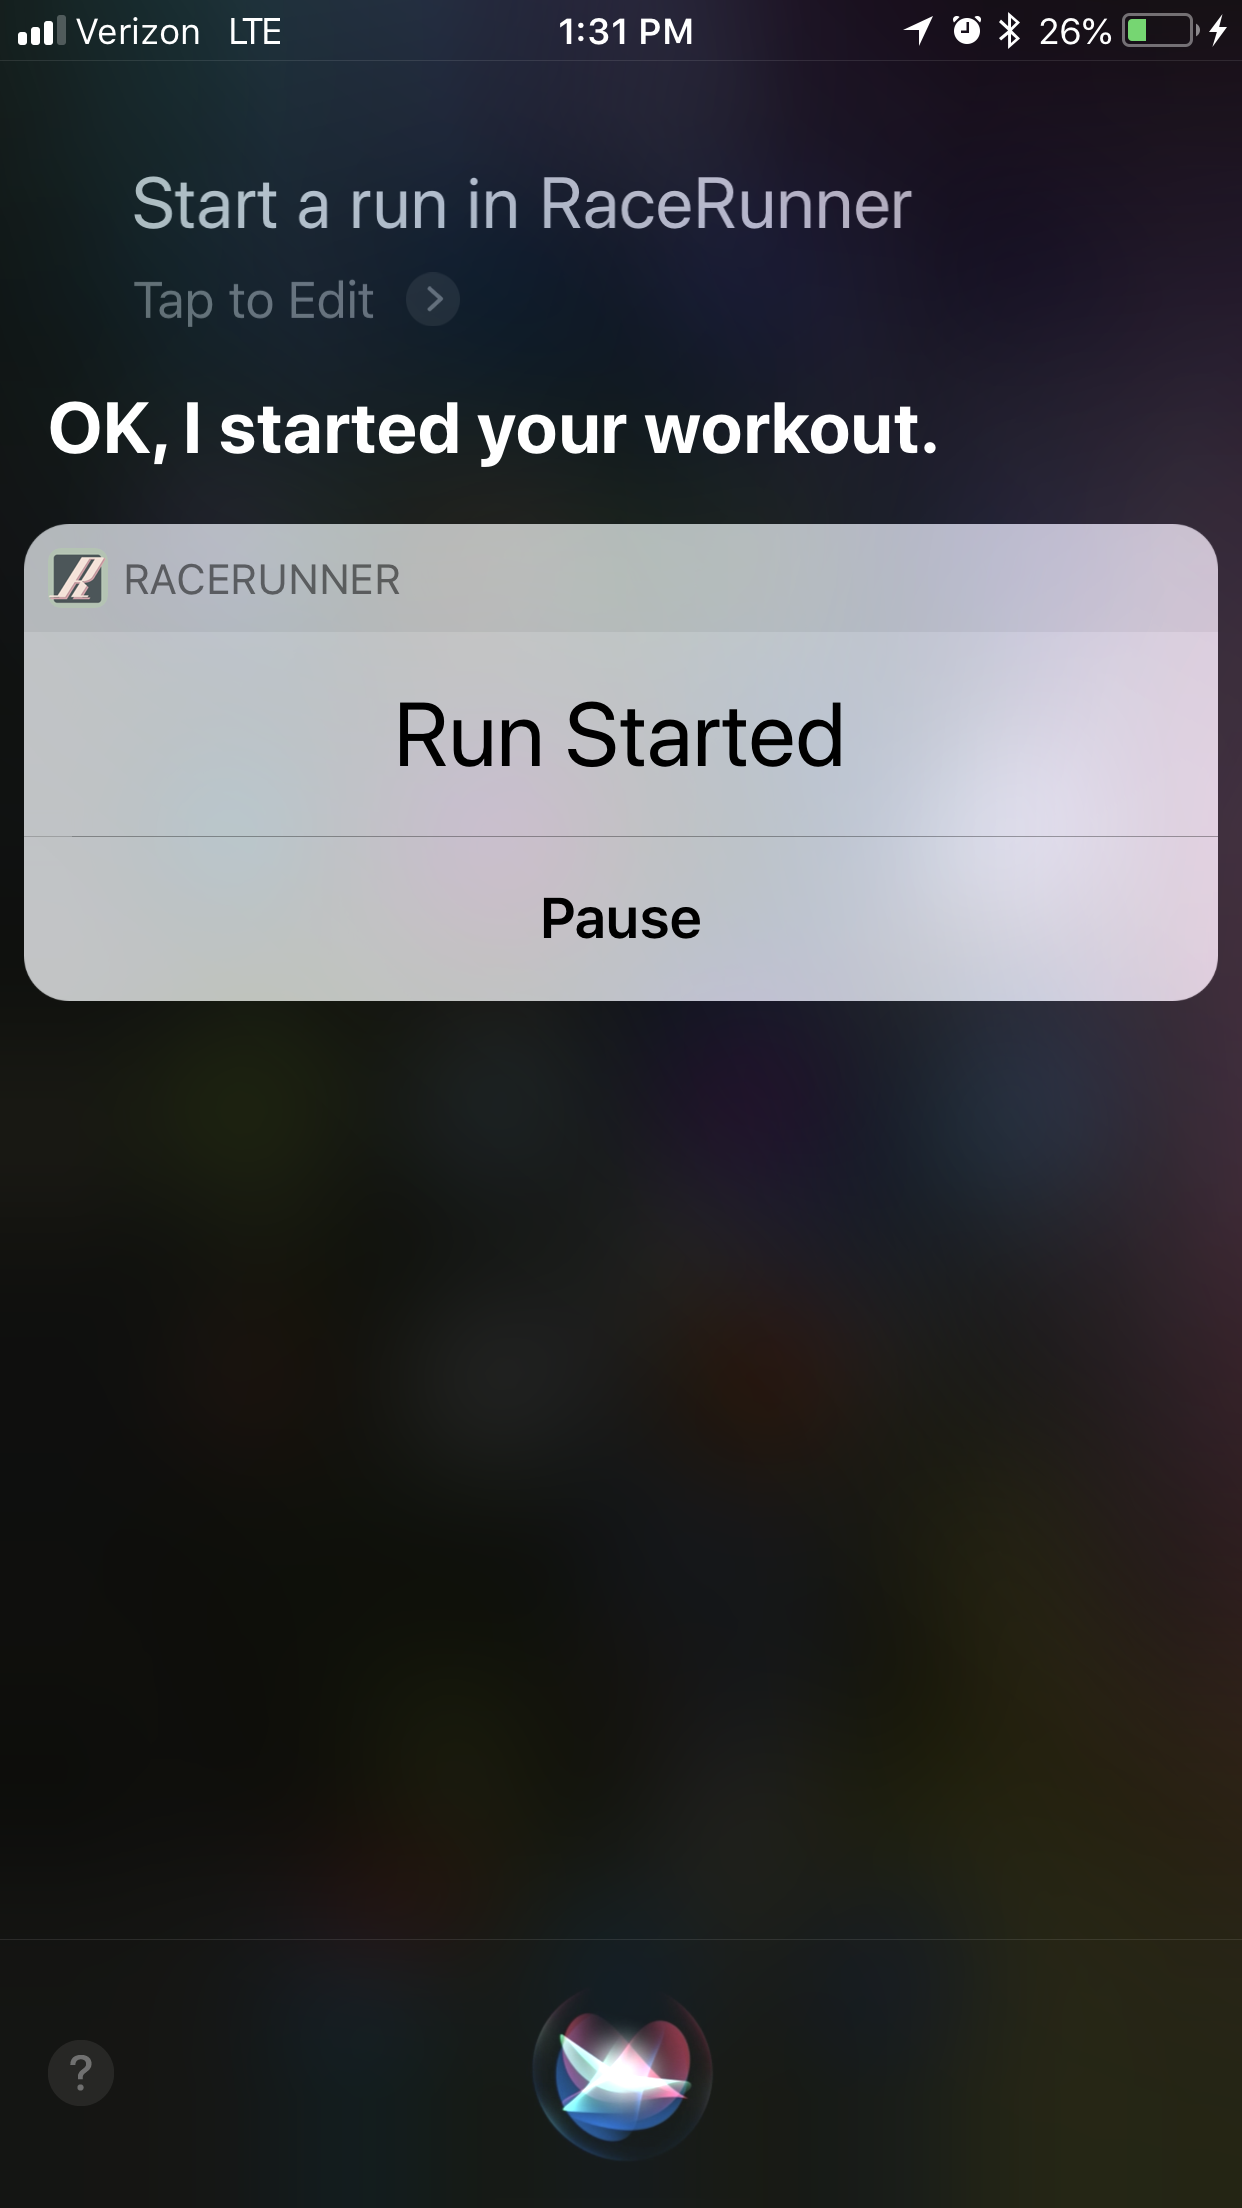 RaceRunner Workout Started with Siri